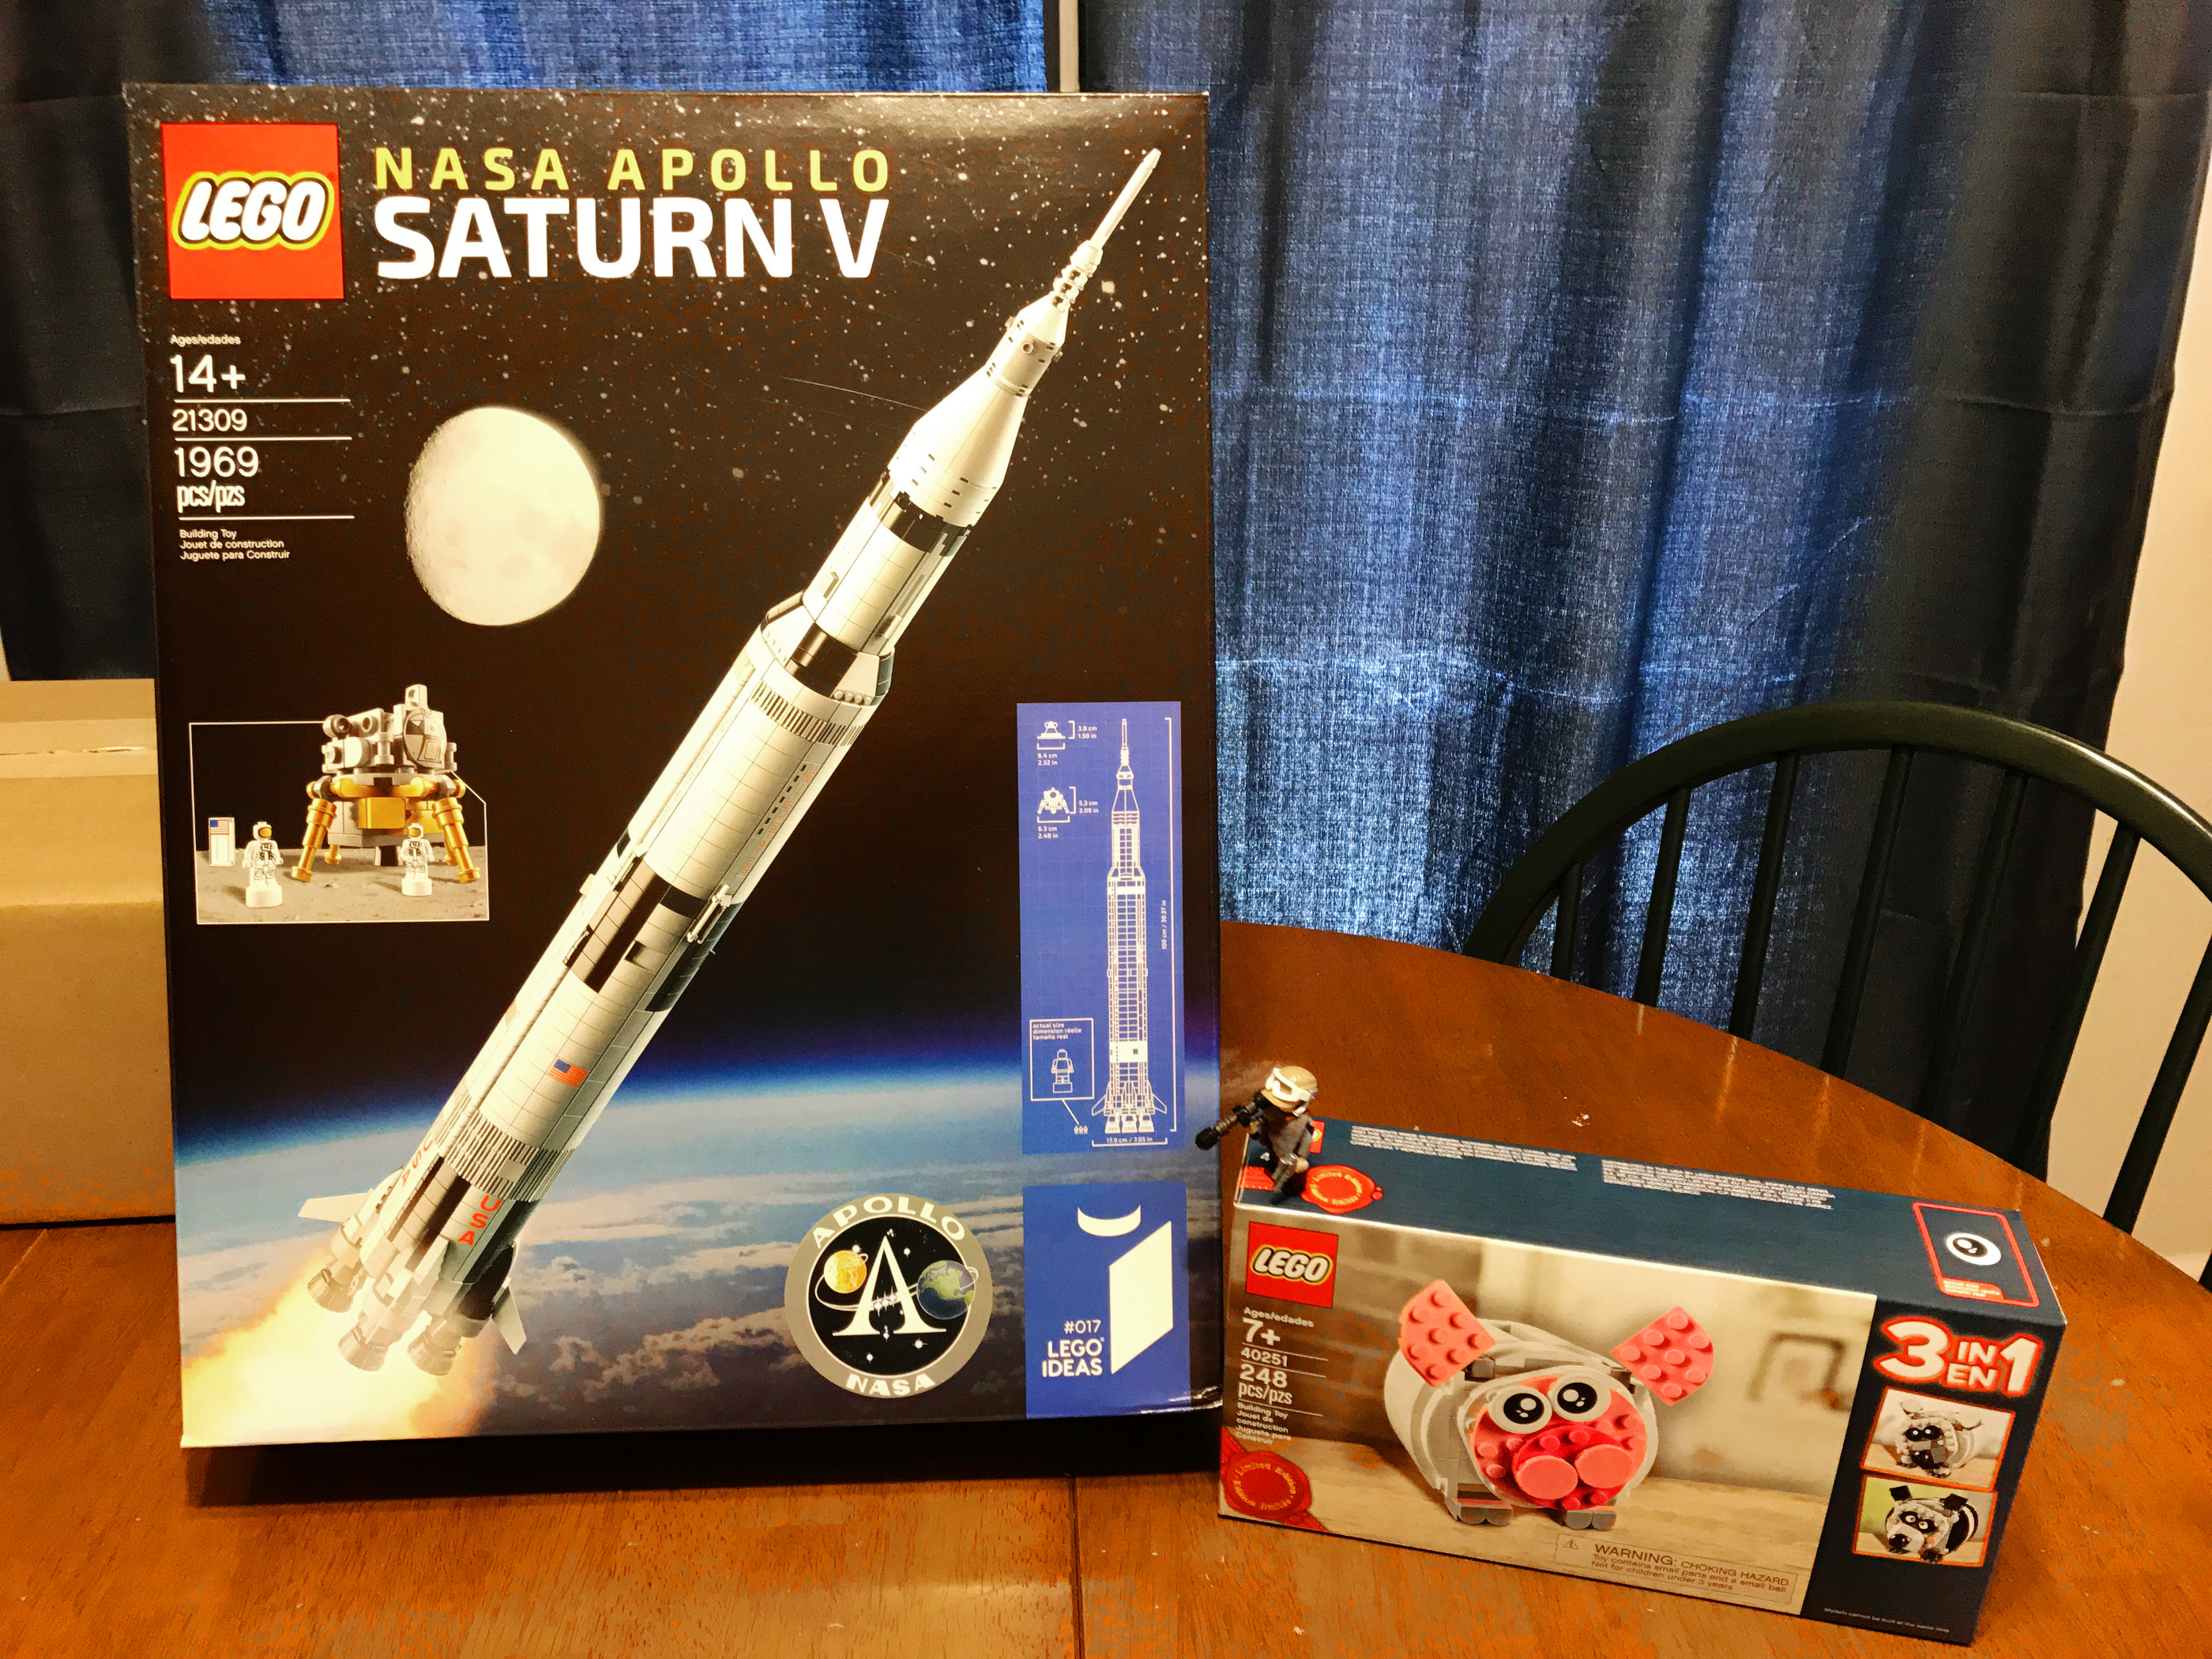 Rockets 10 Minute Astronomy No Disassemble Lego Ideas Proposal Makes It Easy To Oh Man I Have Been Longing For One Of These Since The Project Was First Announced On Site Set Officially 21309 Nasa Apollo